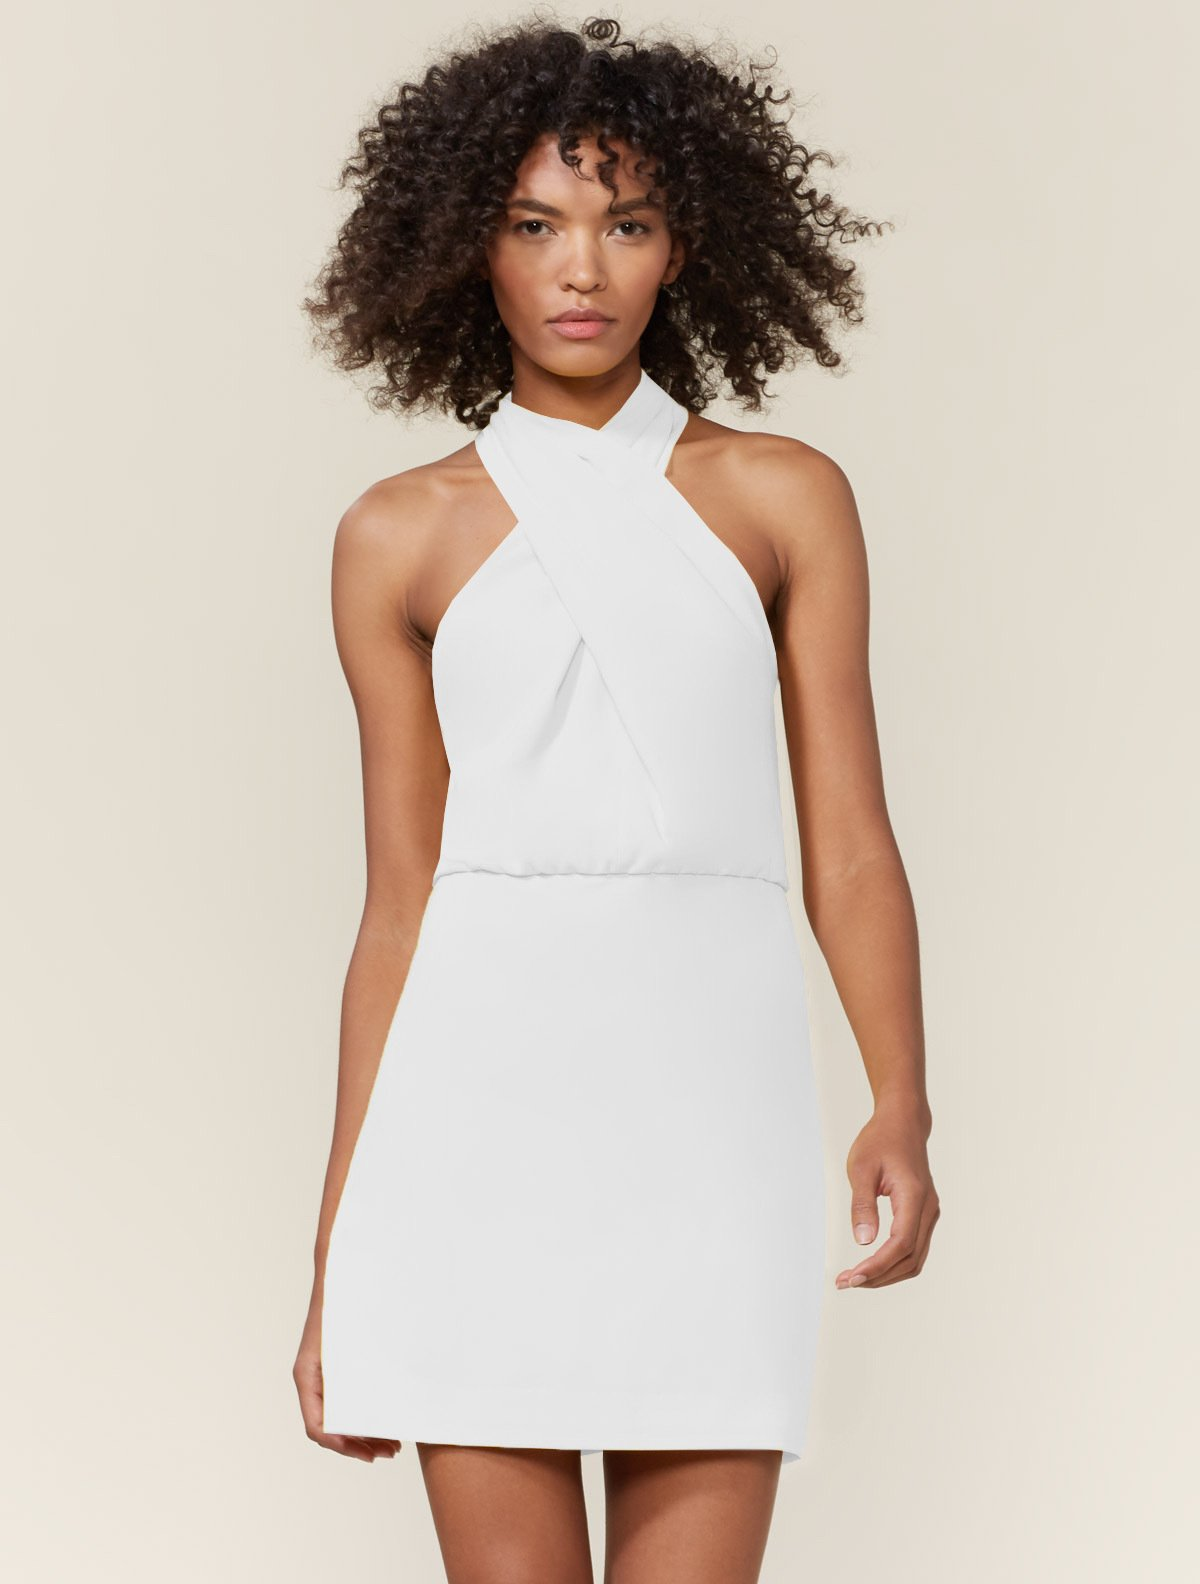 SLEEVELESS CROSS NECK DRESS - Halston